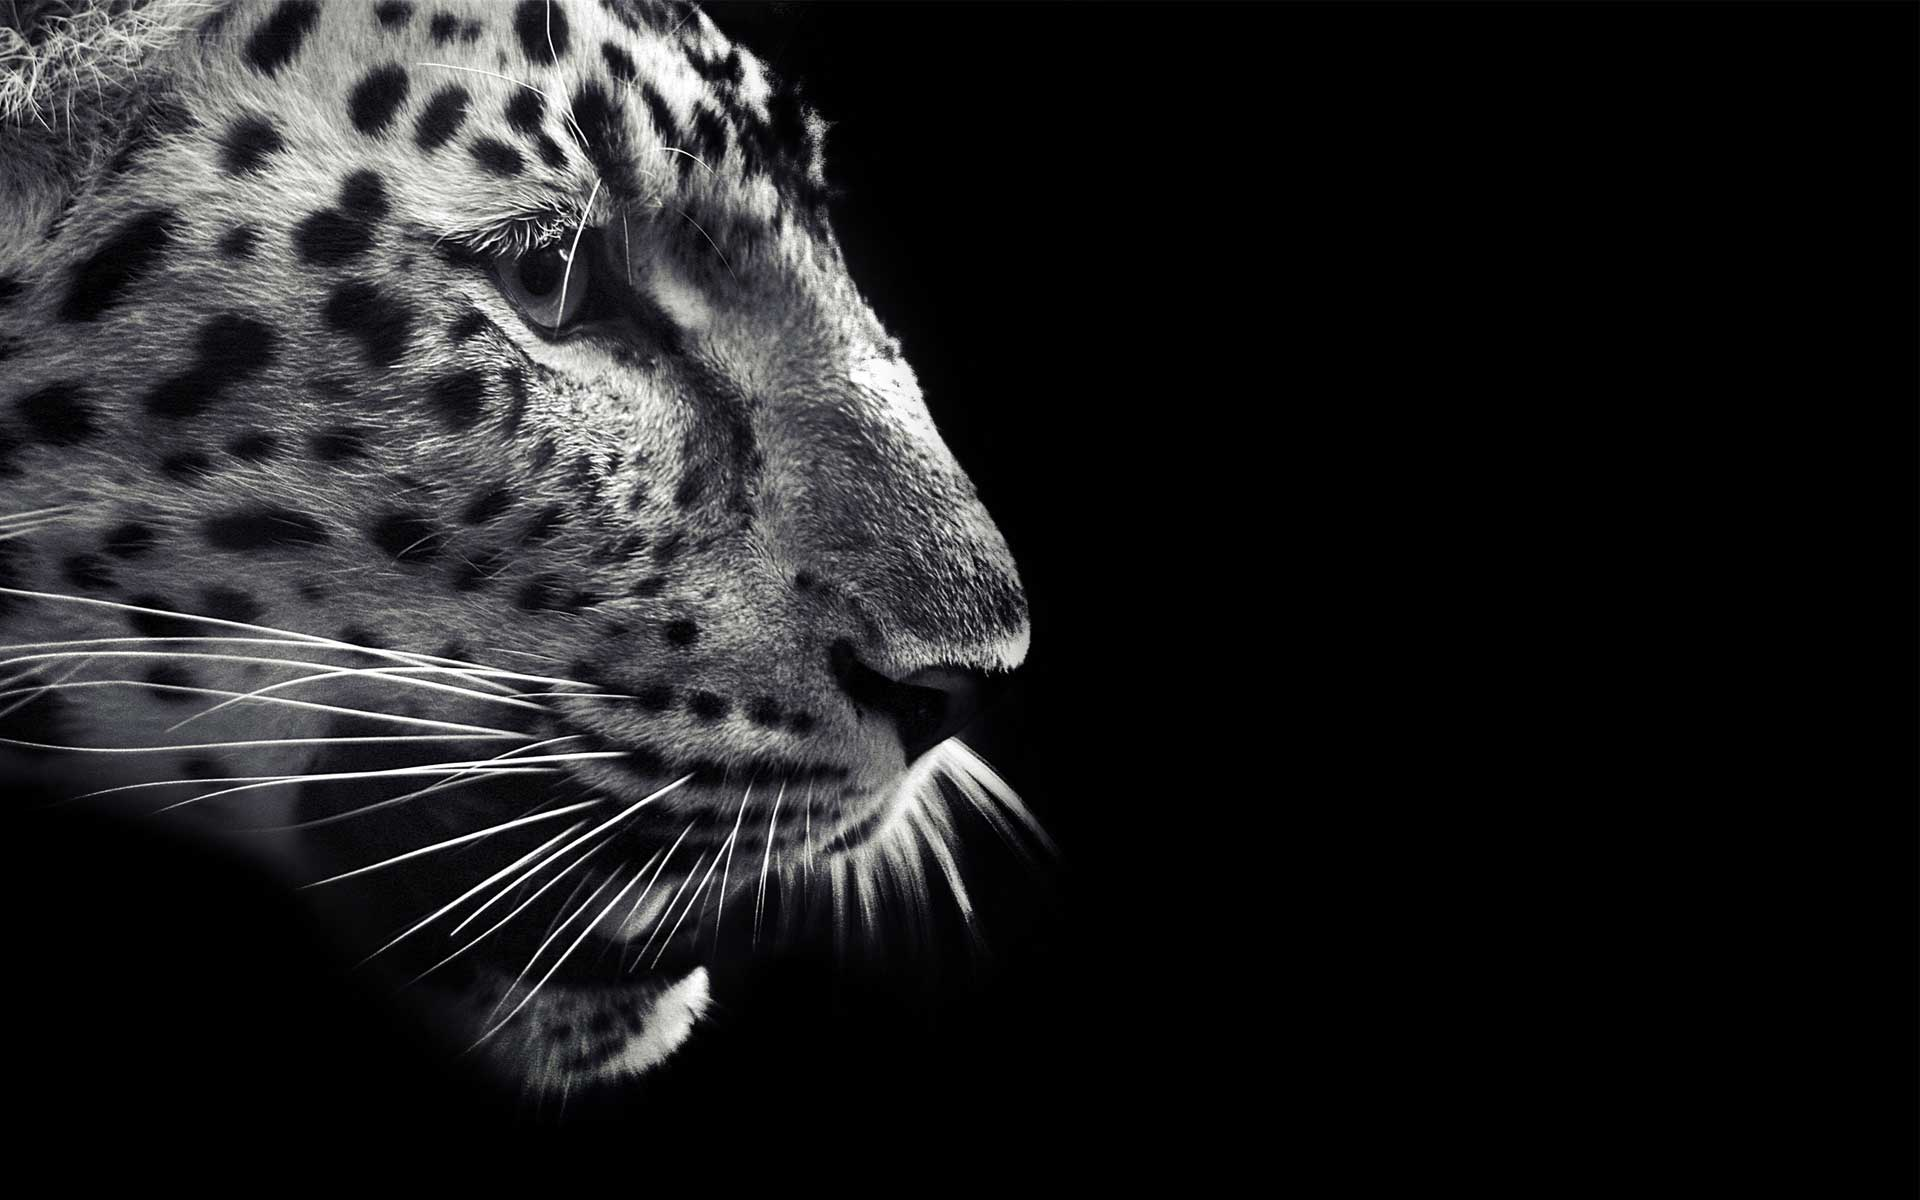 Animals Jaguars Wallpapers Hd Desktop And Mobile: Jaguar HD Wallpapers